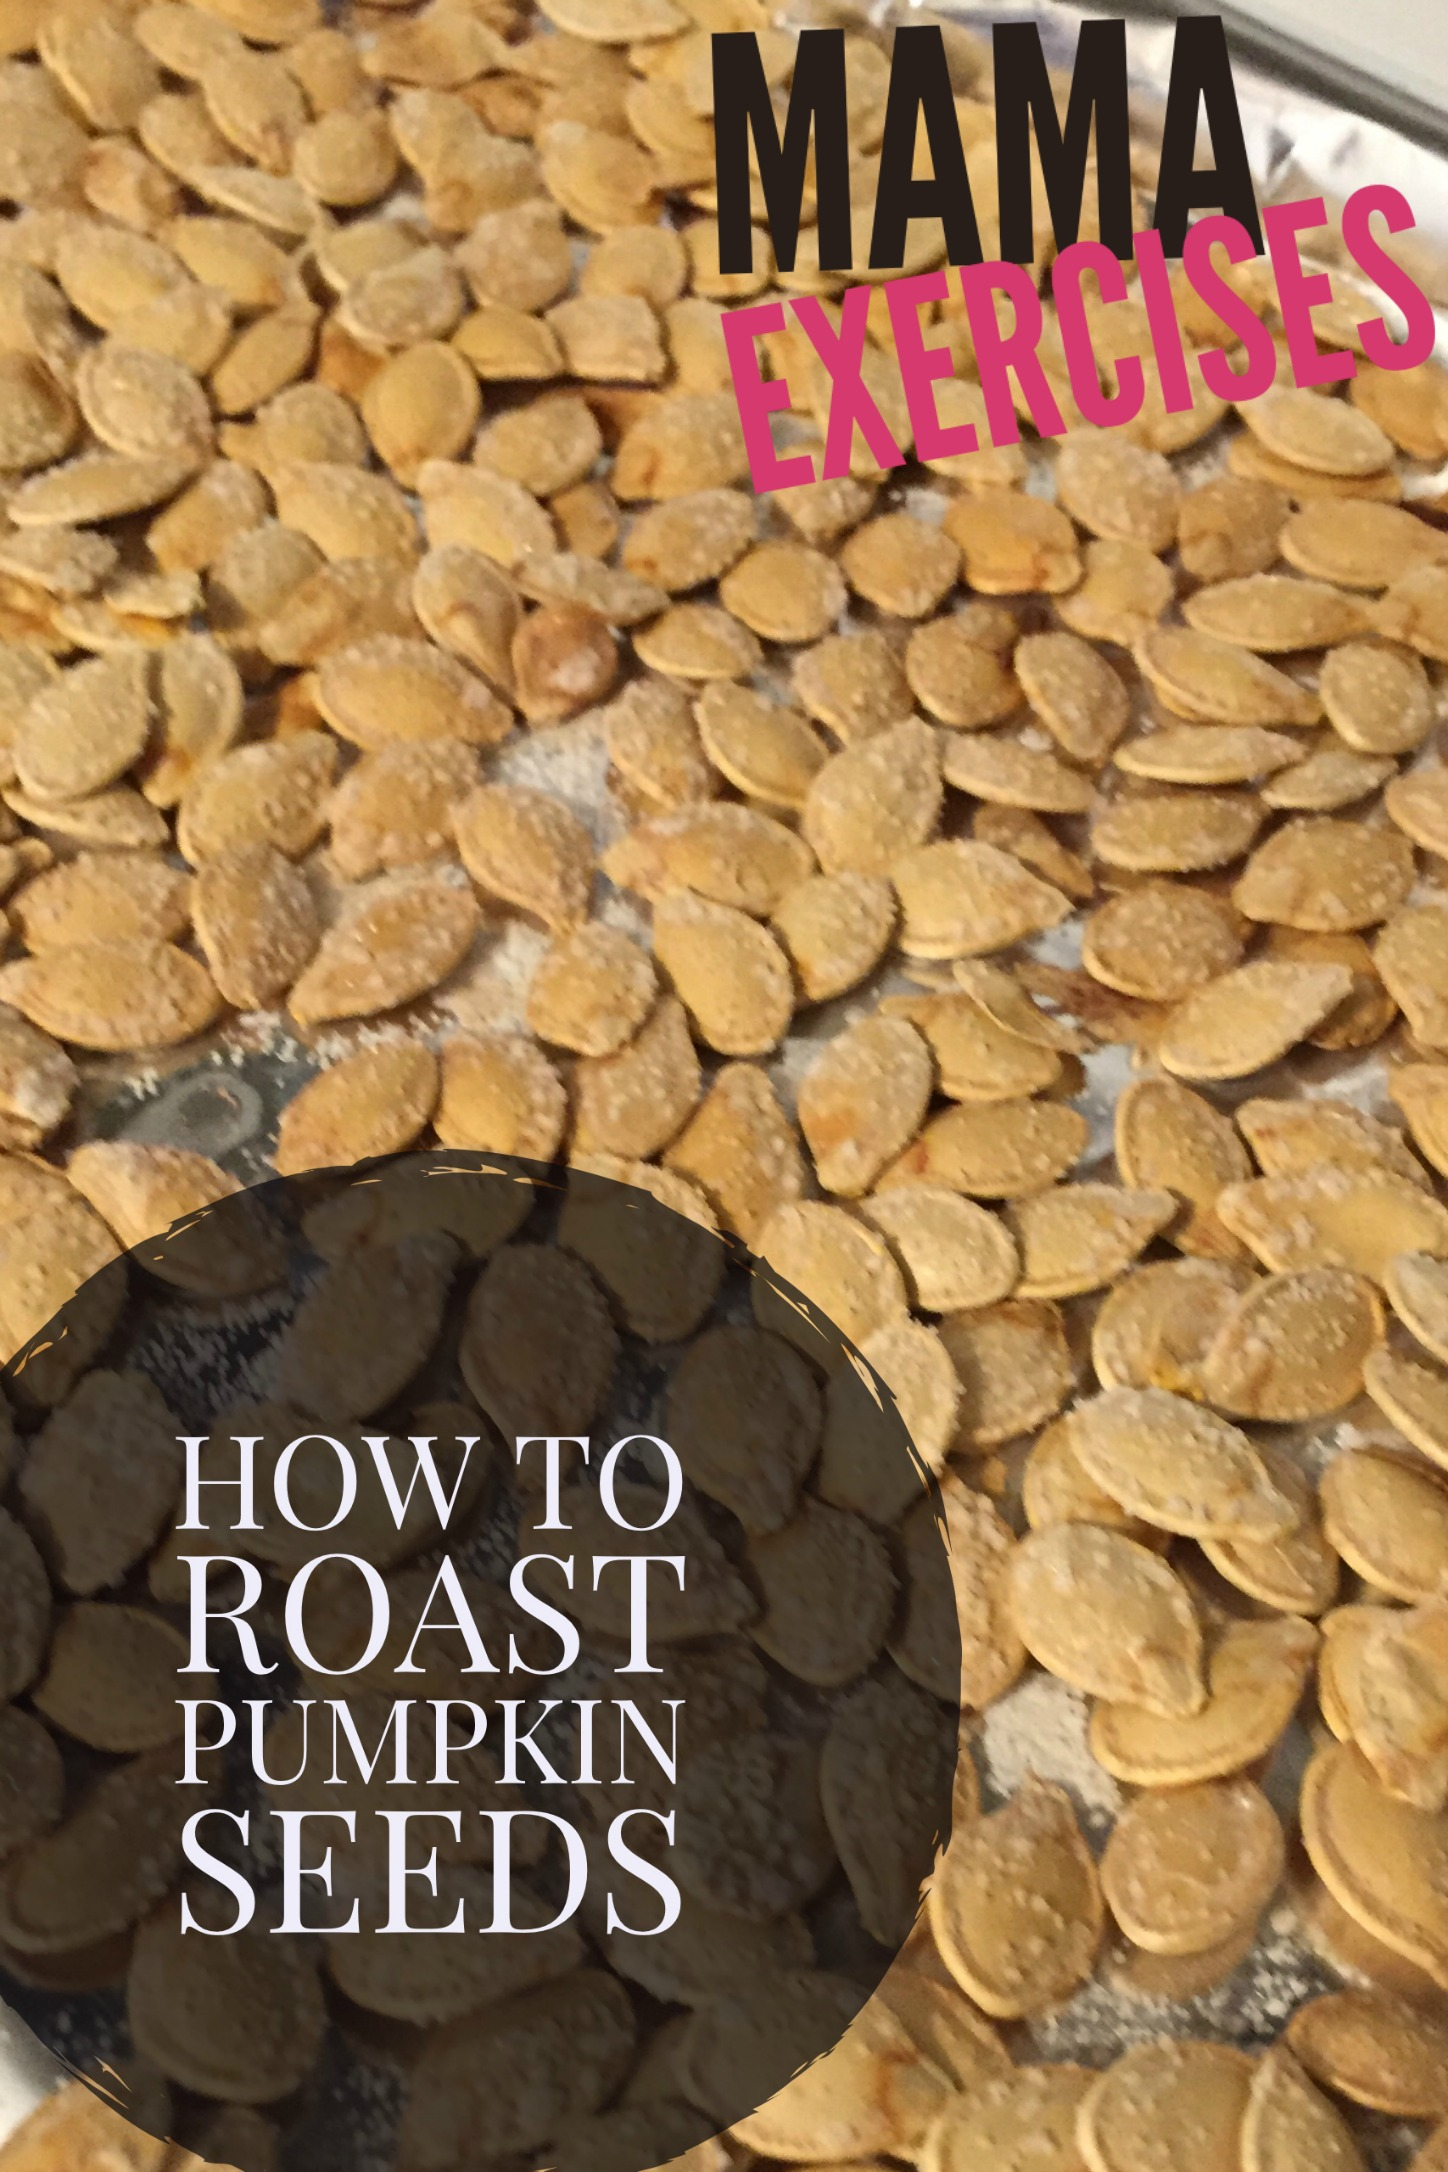 How to roast pumpkin seeds - Easy and delicious way to make a healthy, tasty snack! - MamaExercises.com